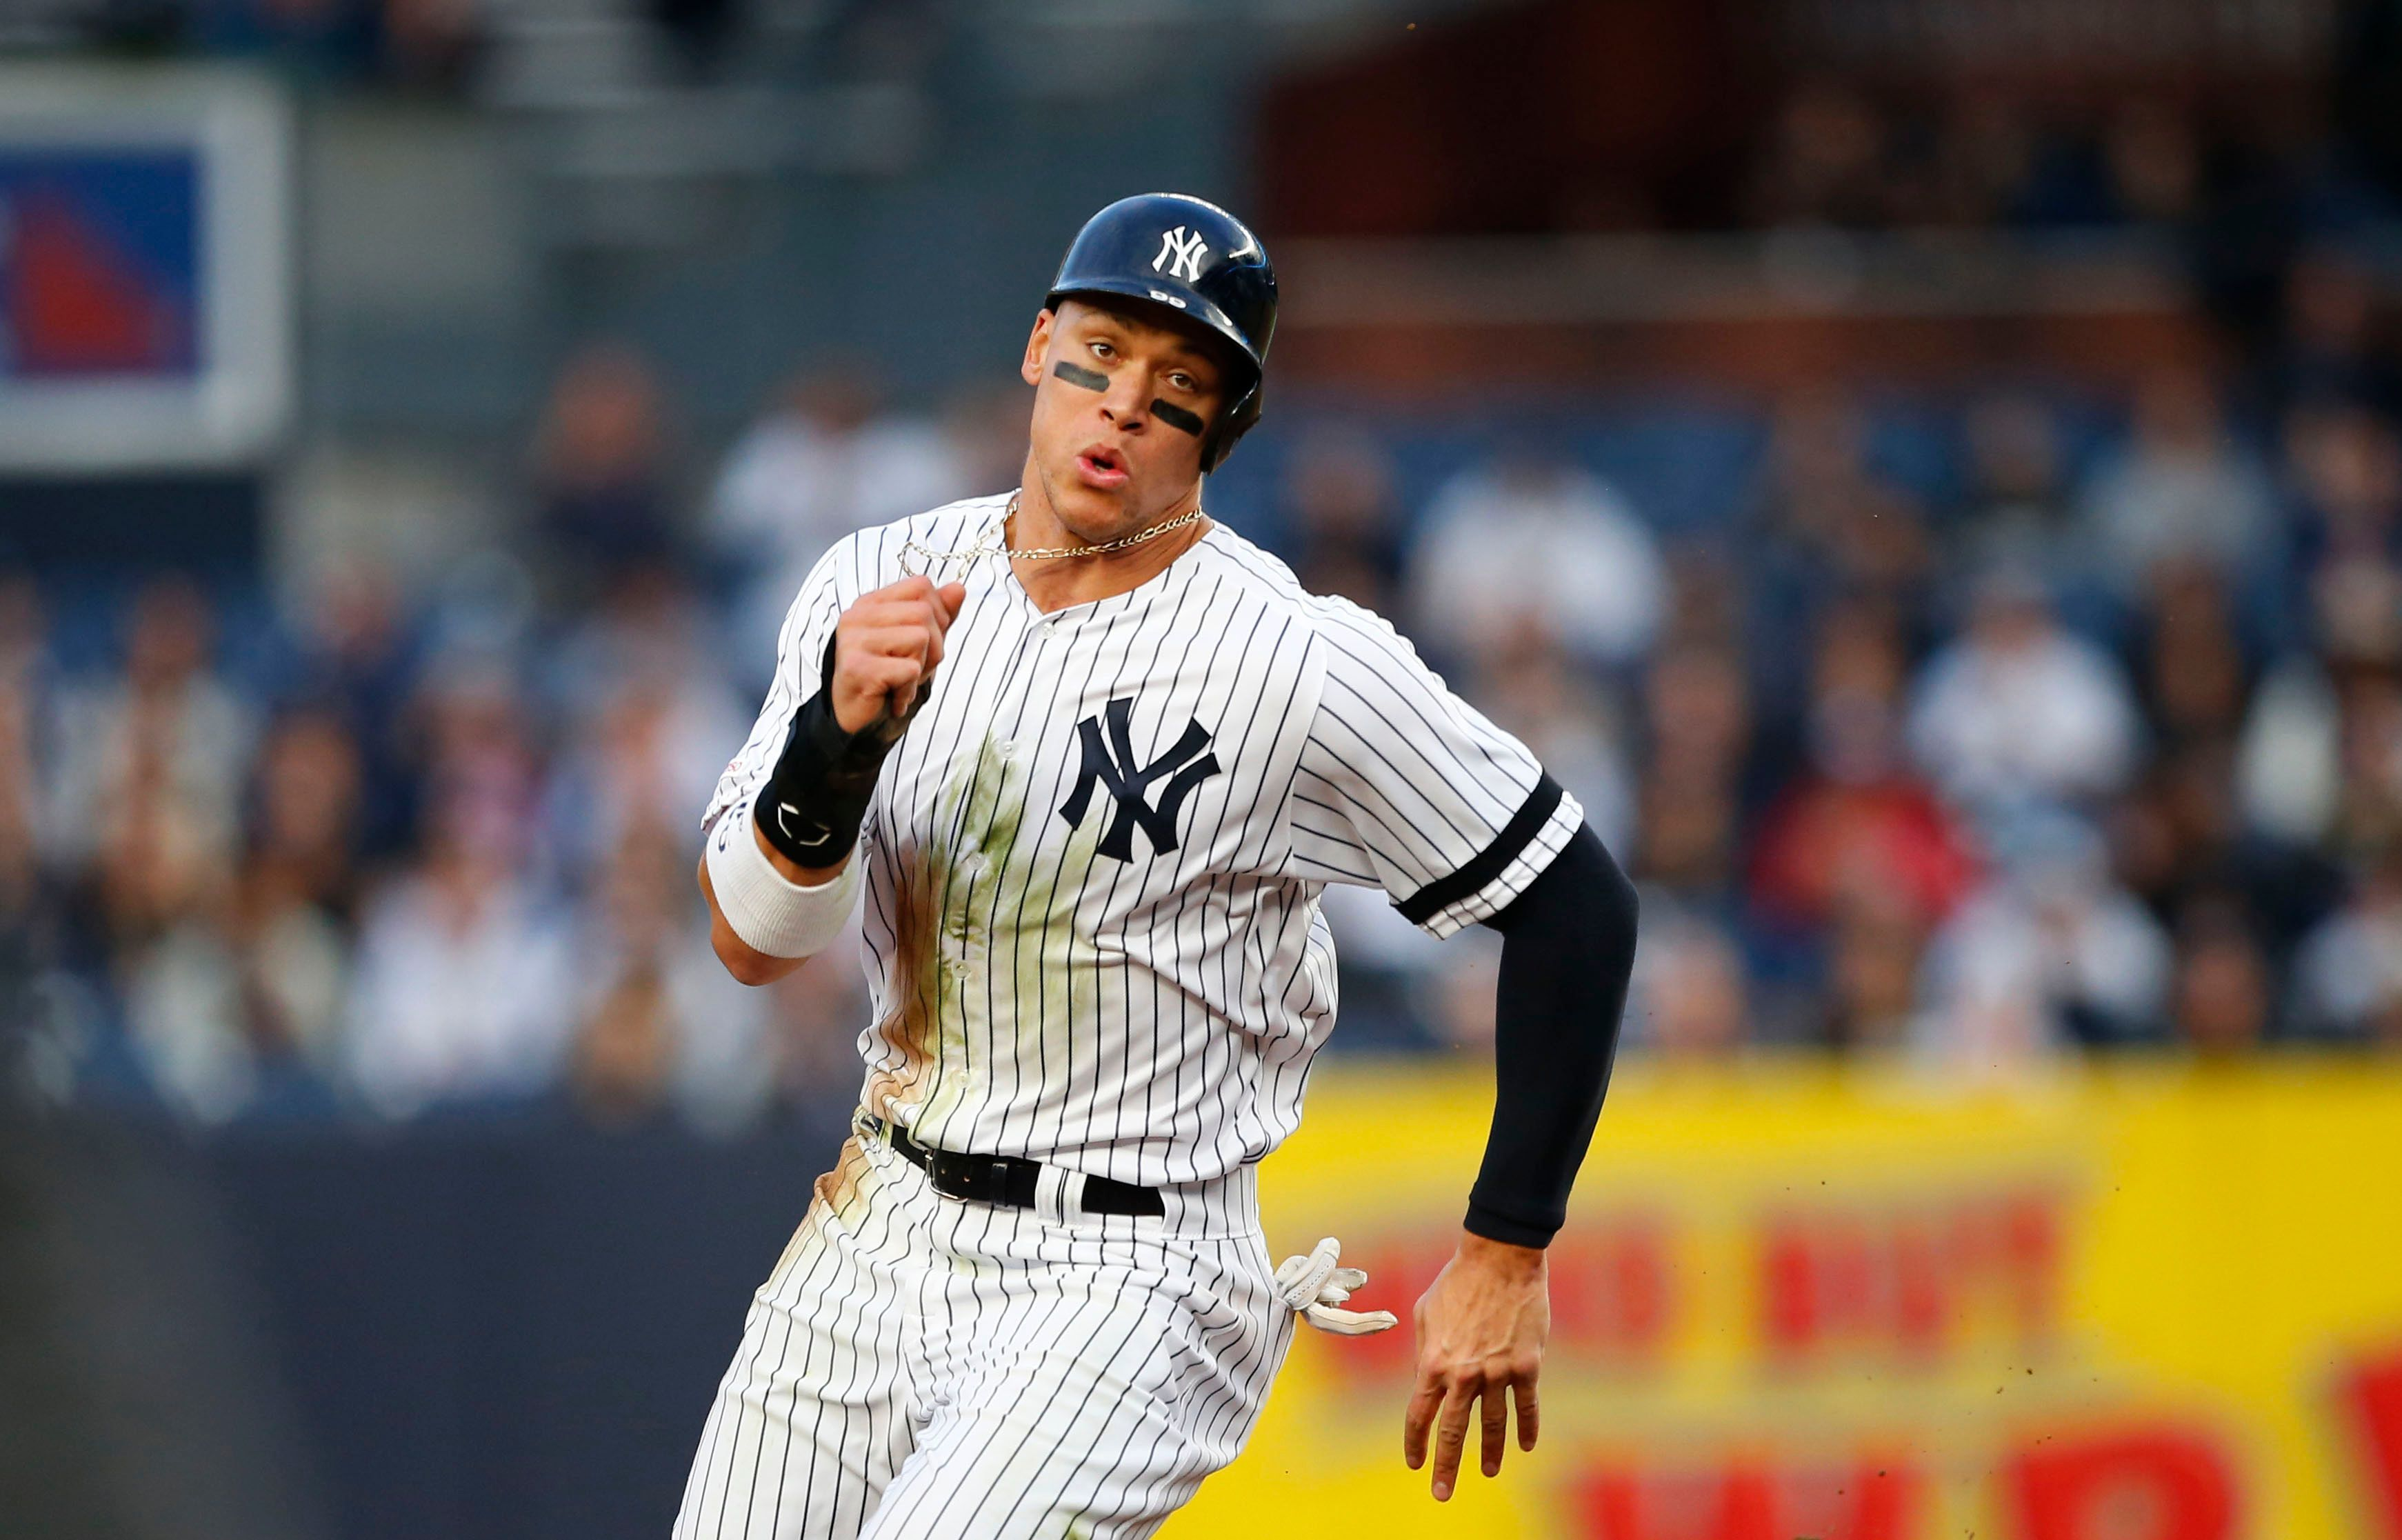 New York Yankees Lose Aaron Judge In Sixth Inning With Oblique Injury Mri Up Next New York Yankees The Outfield Usa Today Sports